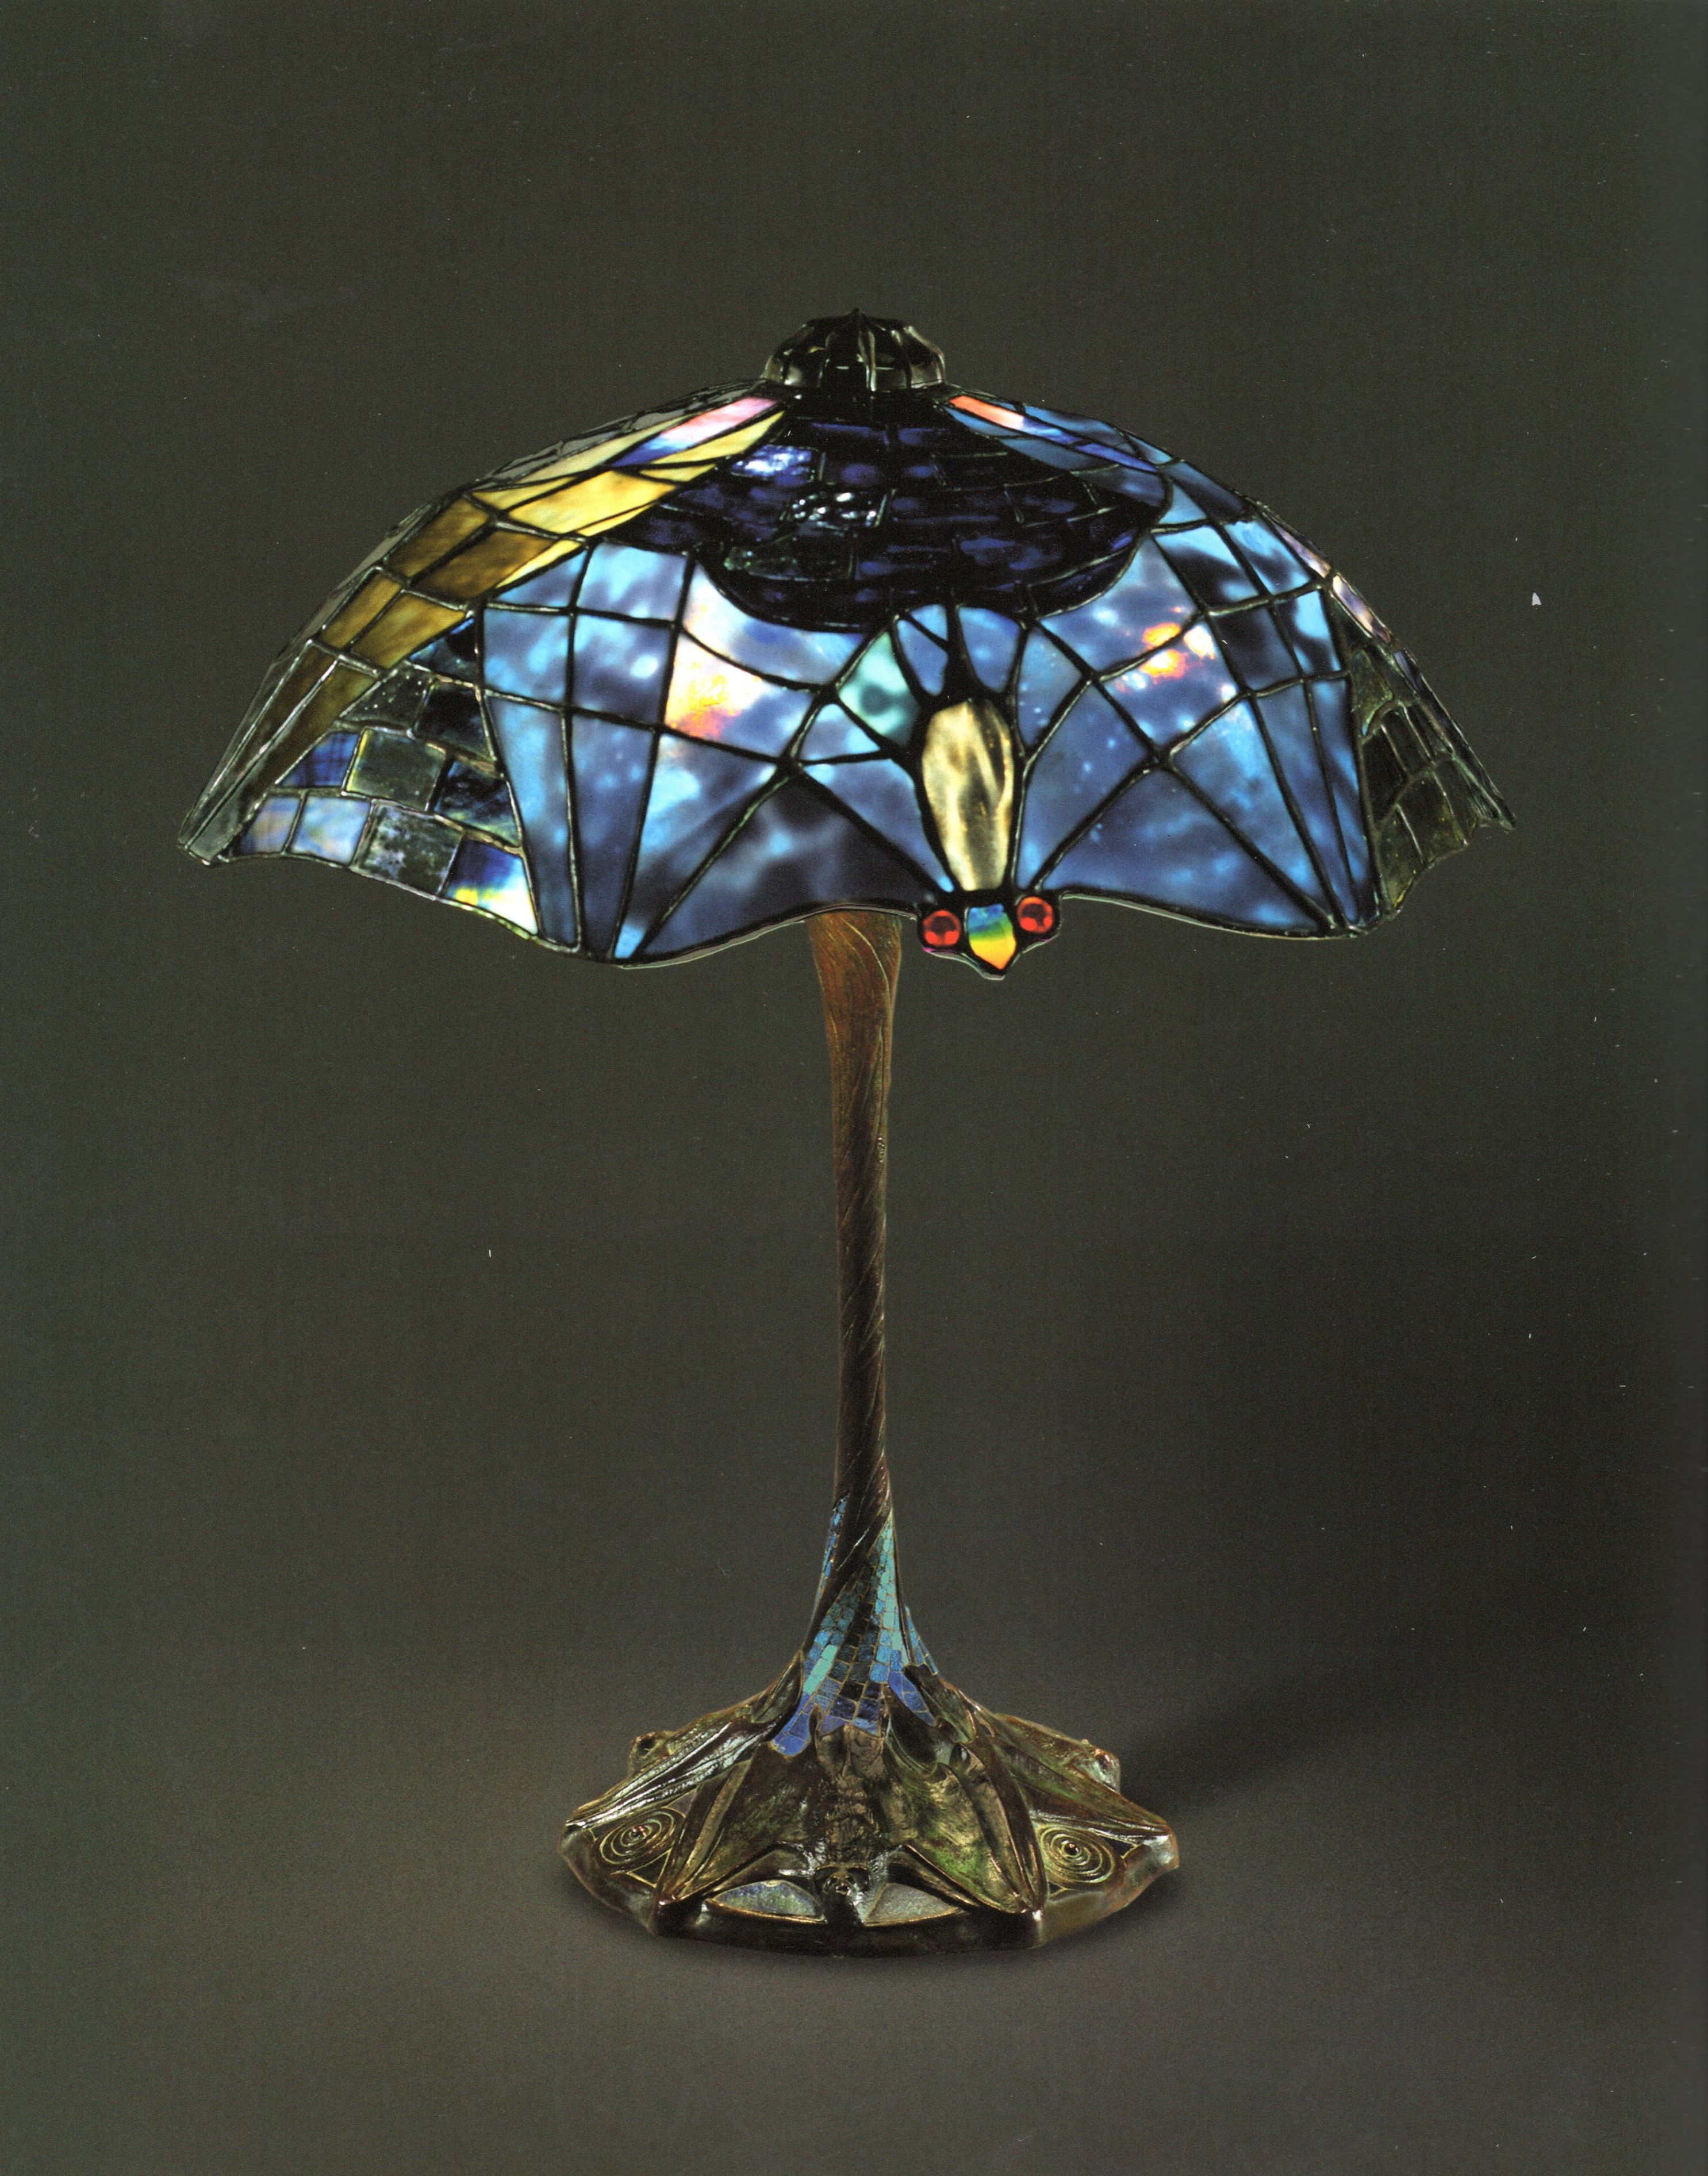 sale stained most lamps images glass the lct internet on squash lamp awesome for shade pin